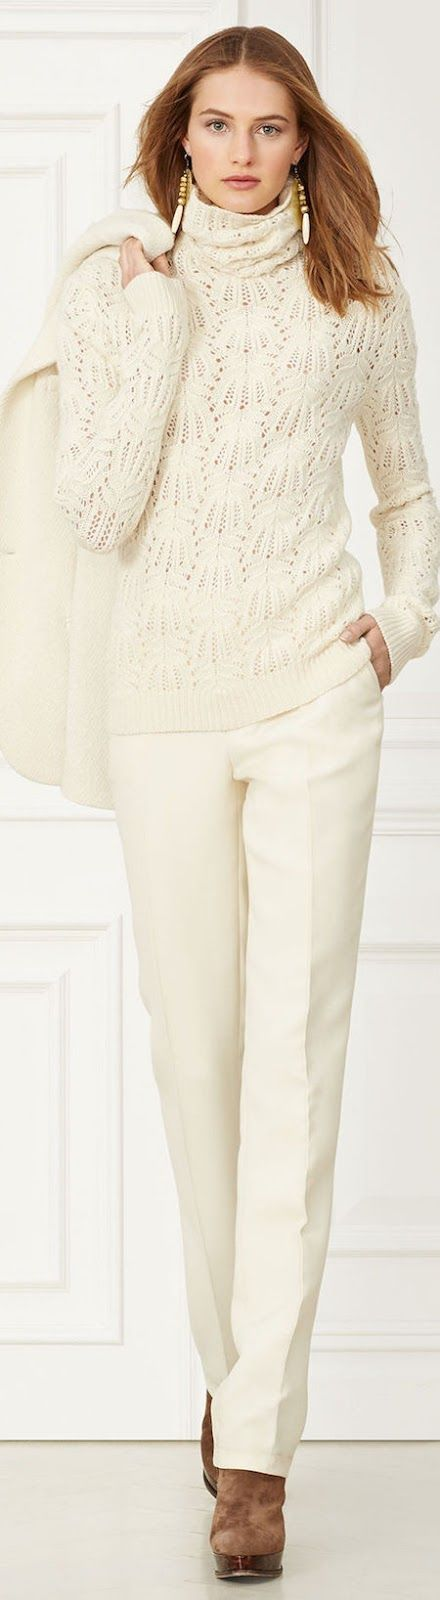 RALPH LAUREN McKAYLA WOOL PANT  Fall 2015